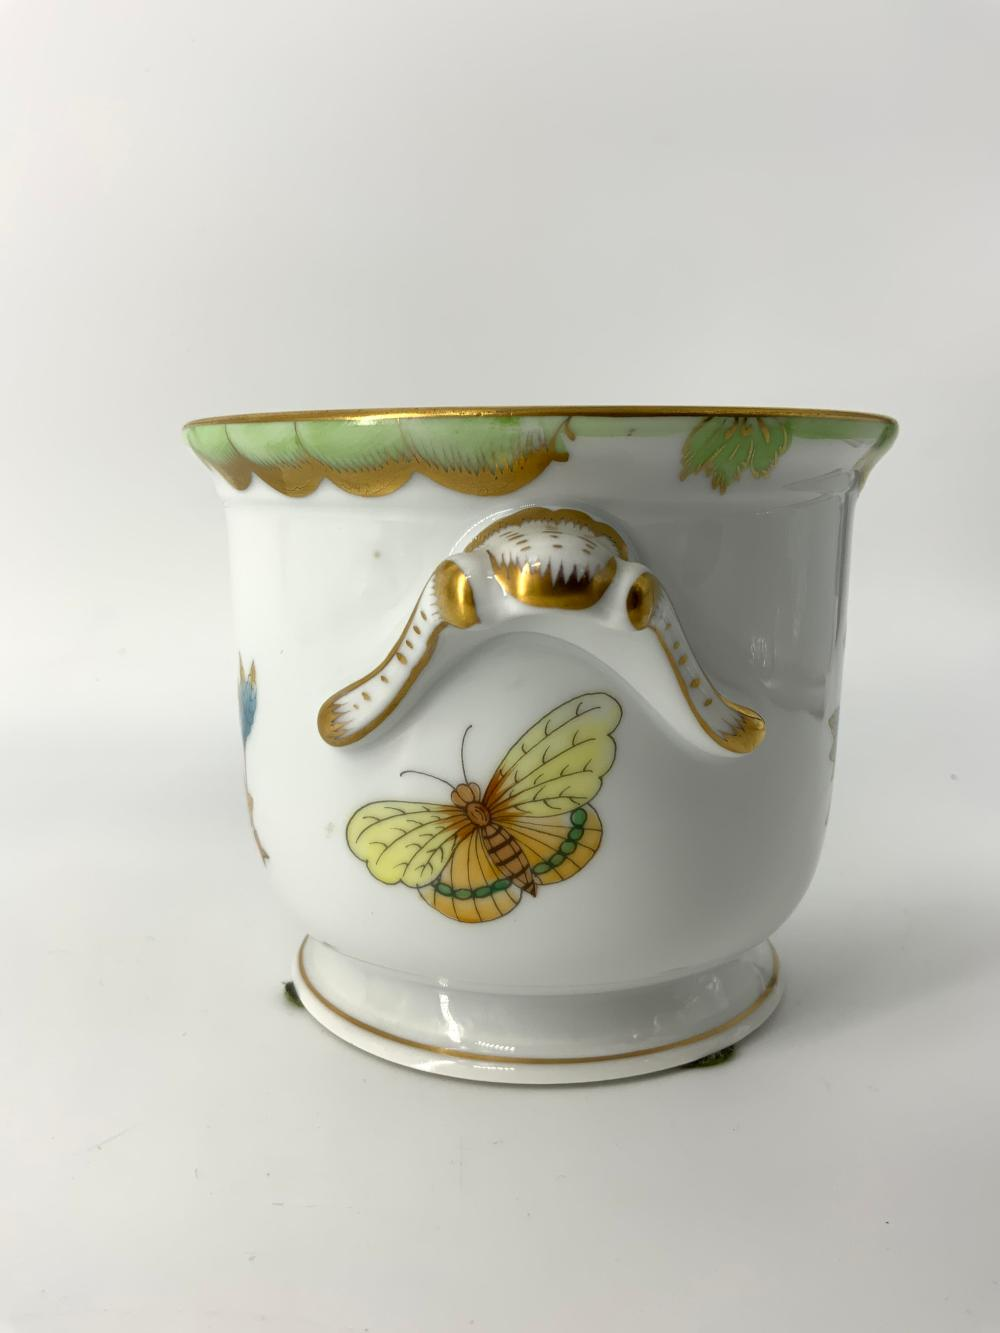 HEREND HUNGARY Hand Painted Ceramic Vessel